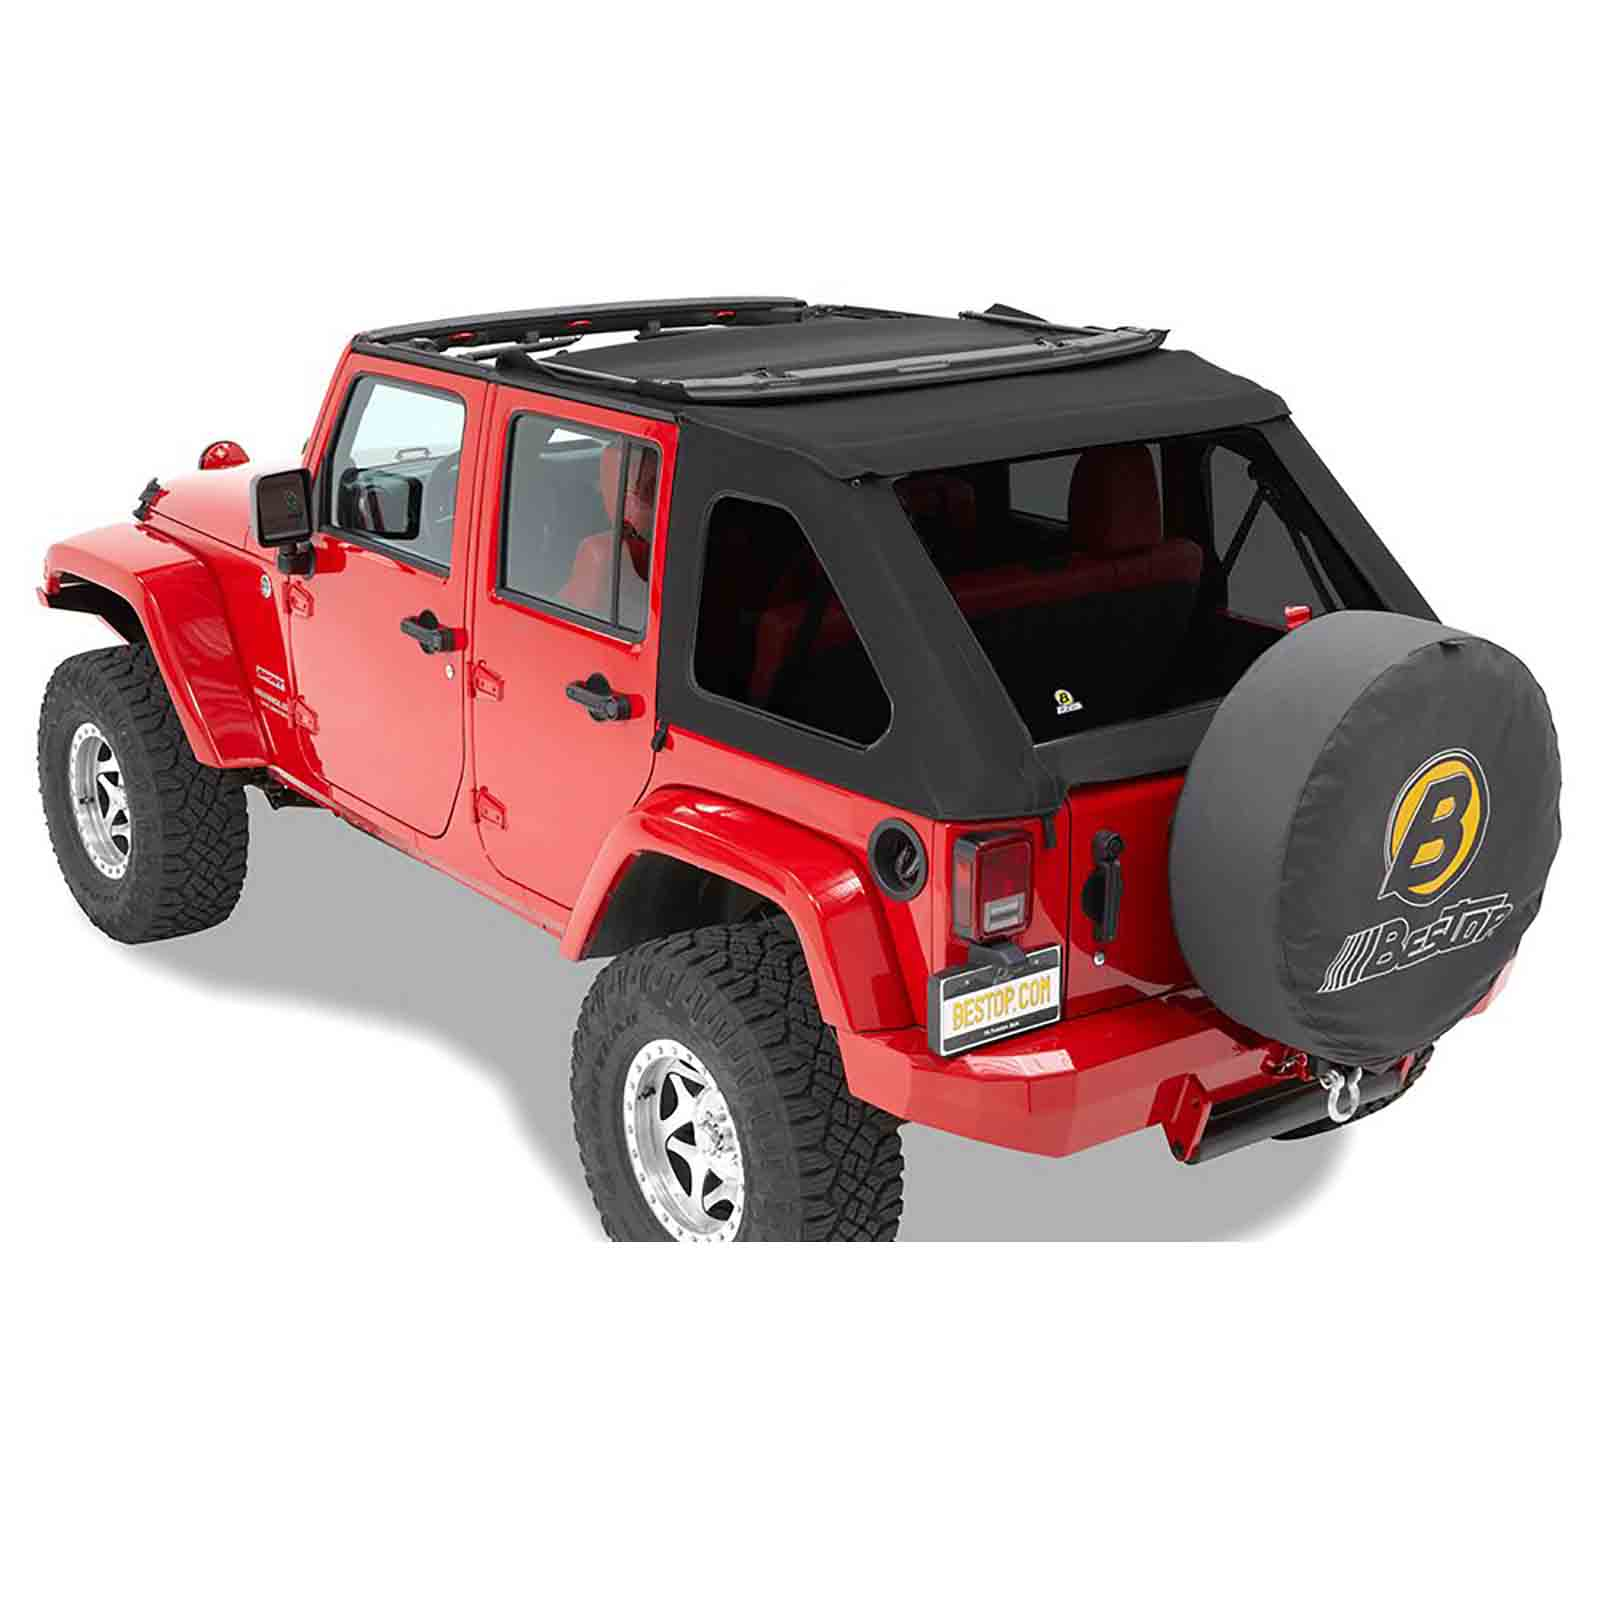 Softtop soft top capottina ricambio trektop nx wrangler jk unlimited 07 16 black twill 4 porte ricamb